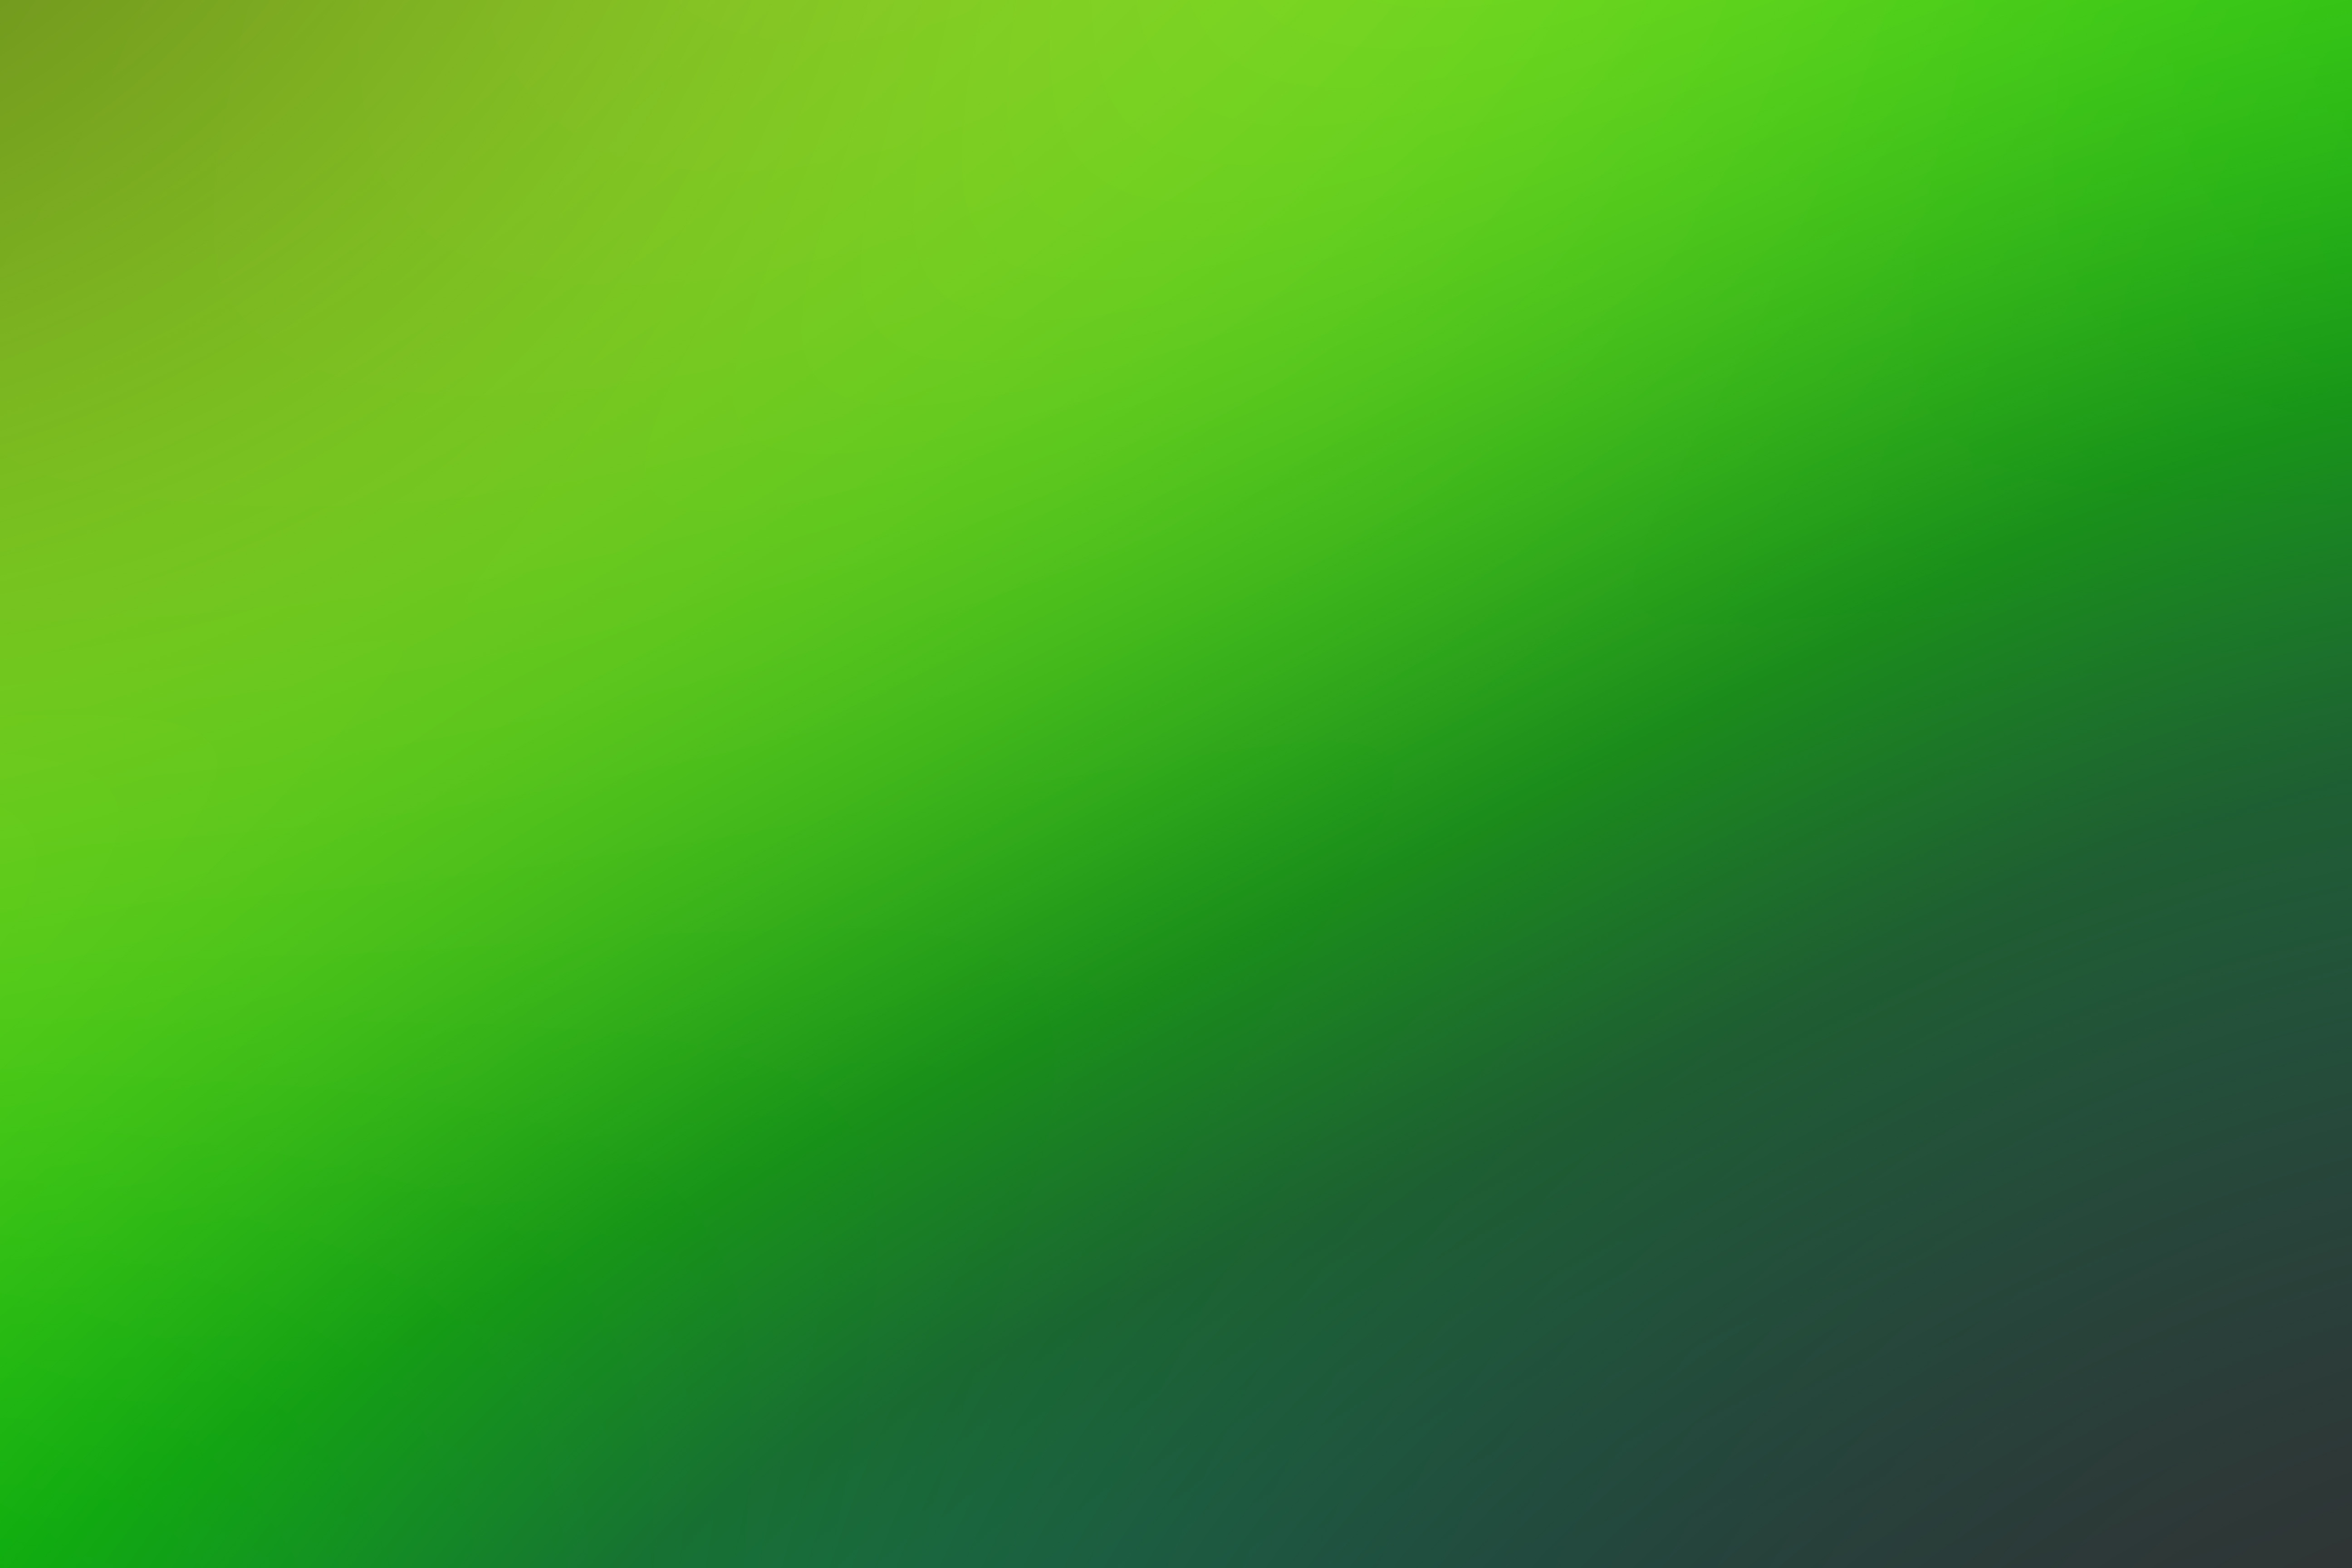 Green color backgrounds